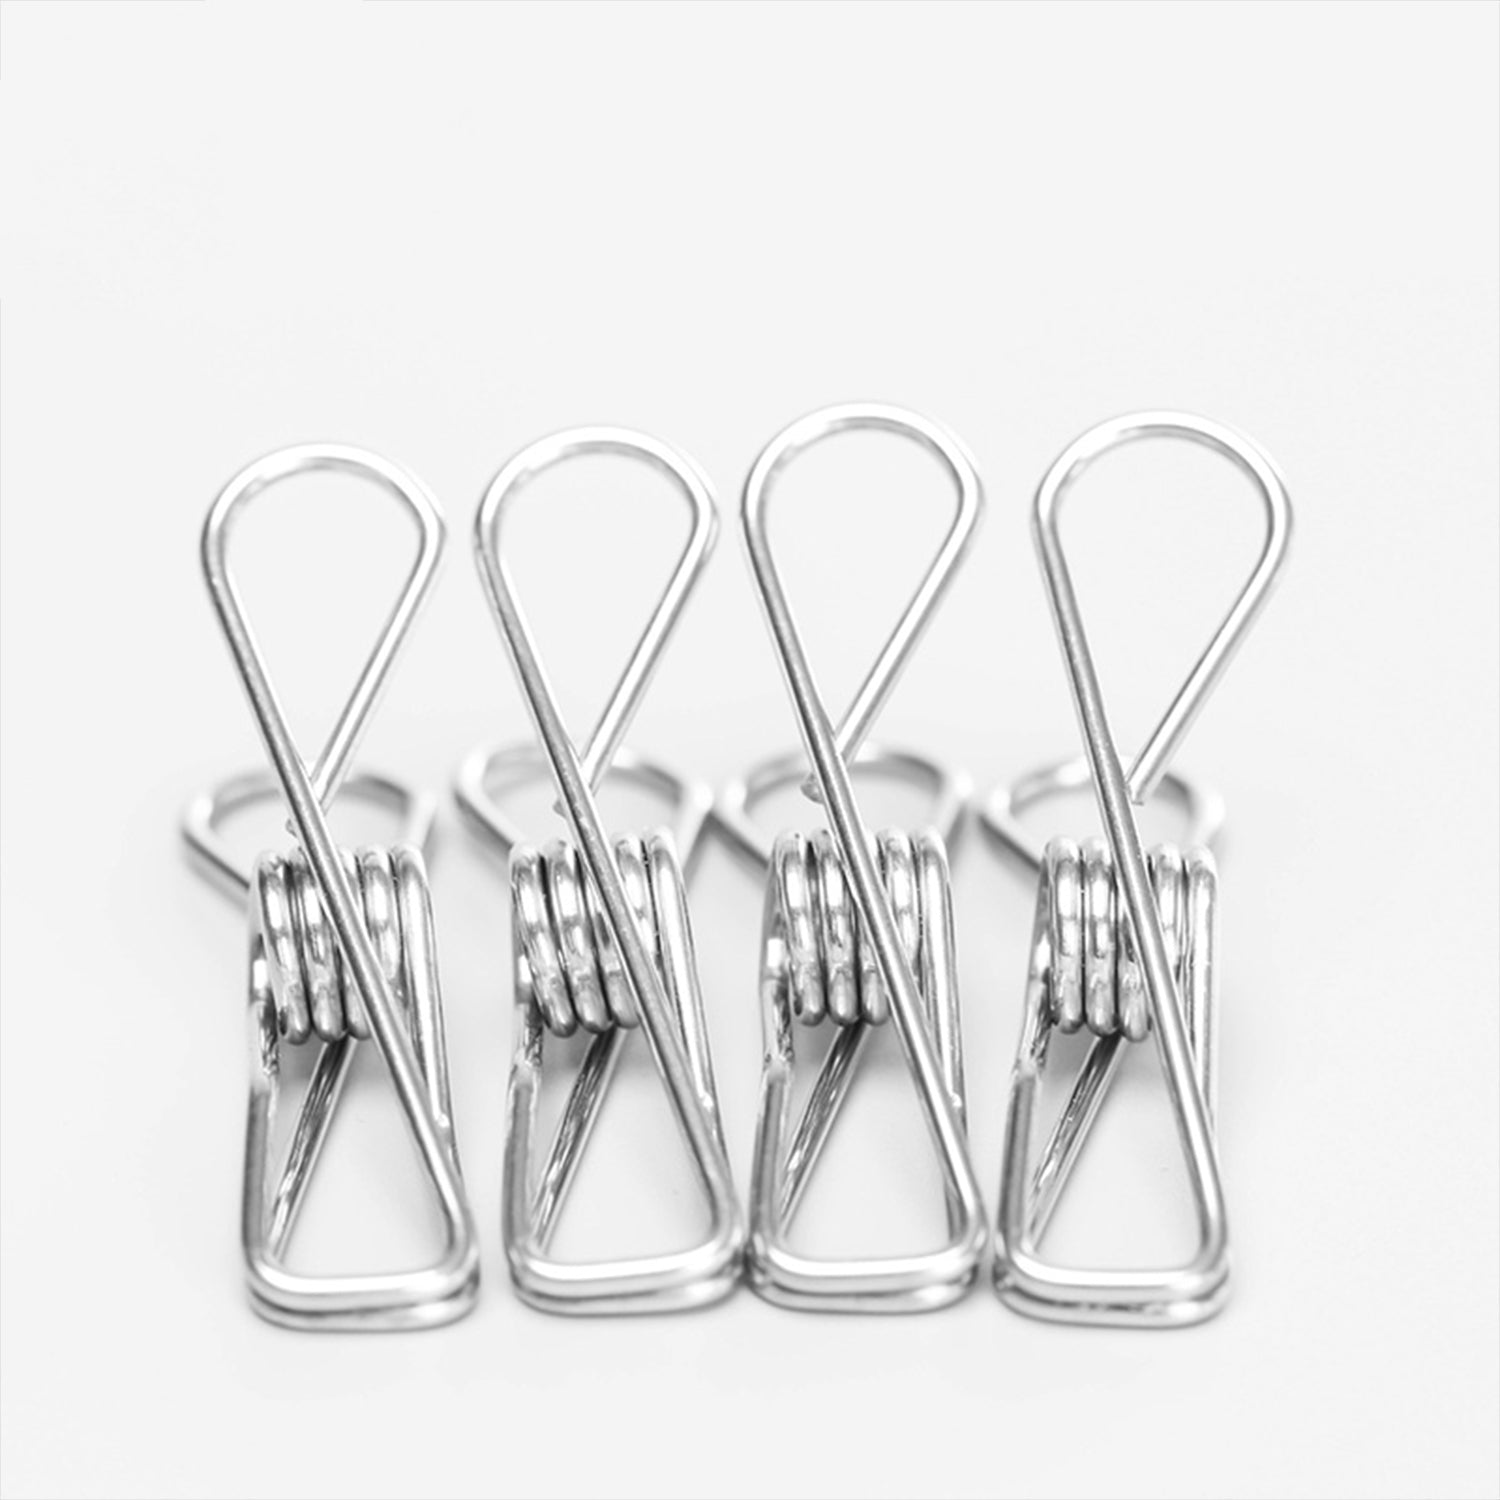 4pcs Stainless Steel Metal Spring Clips